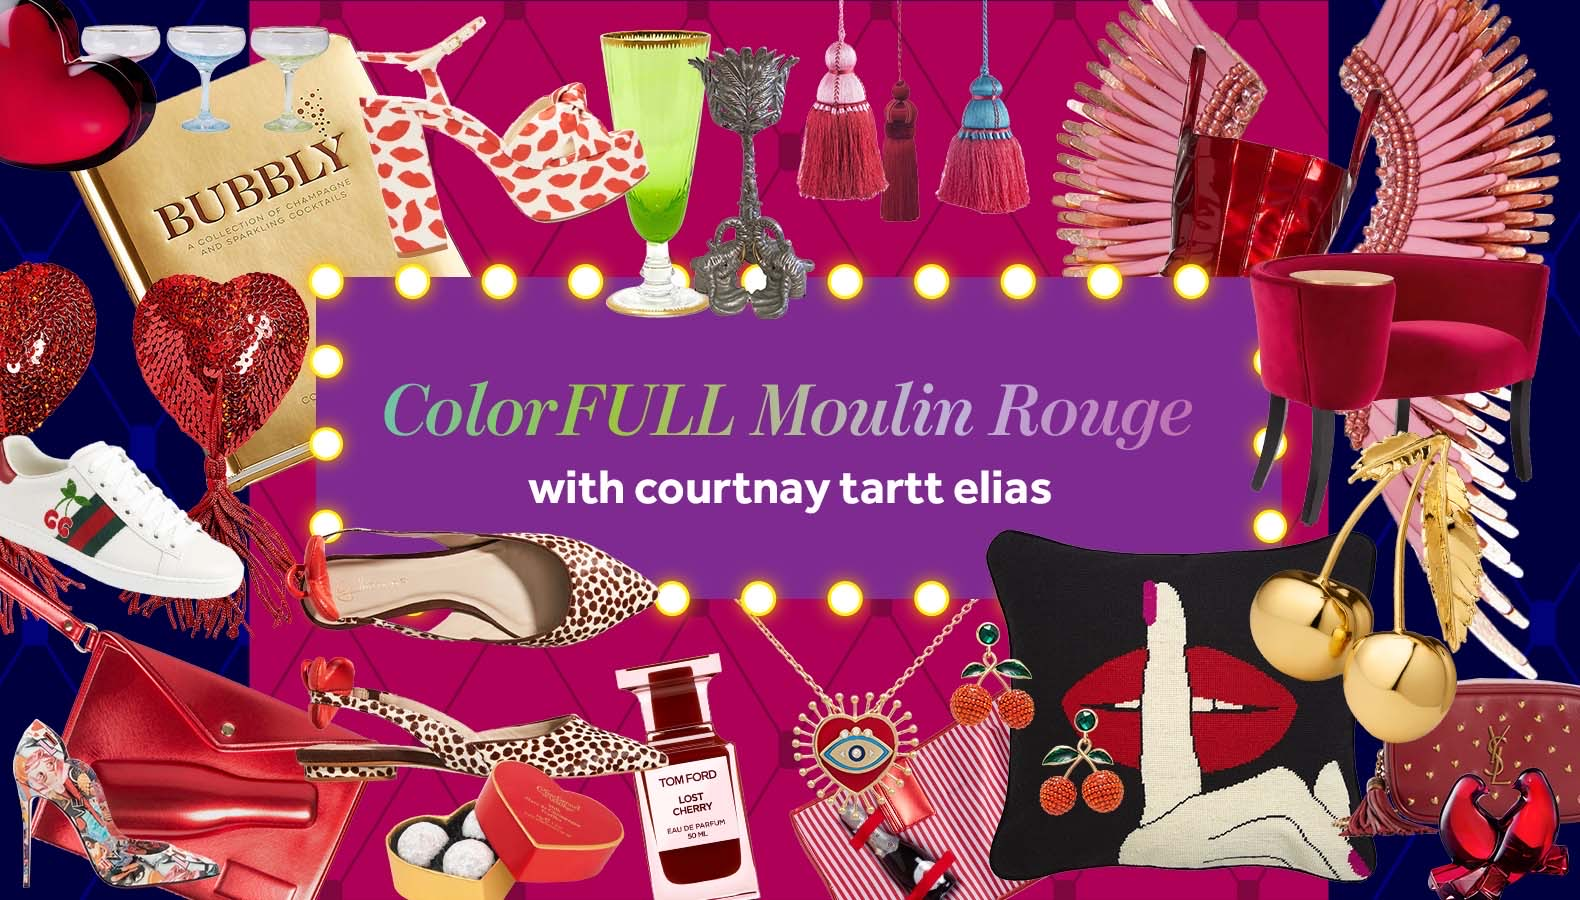 ColorFULL Moulin Rouge